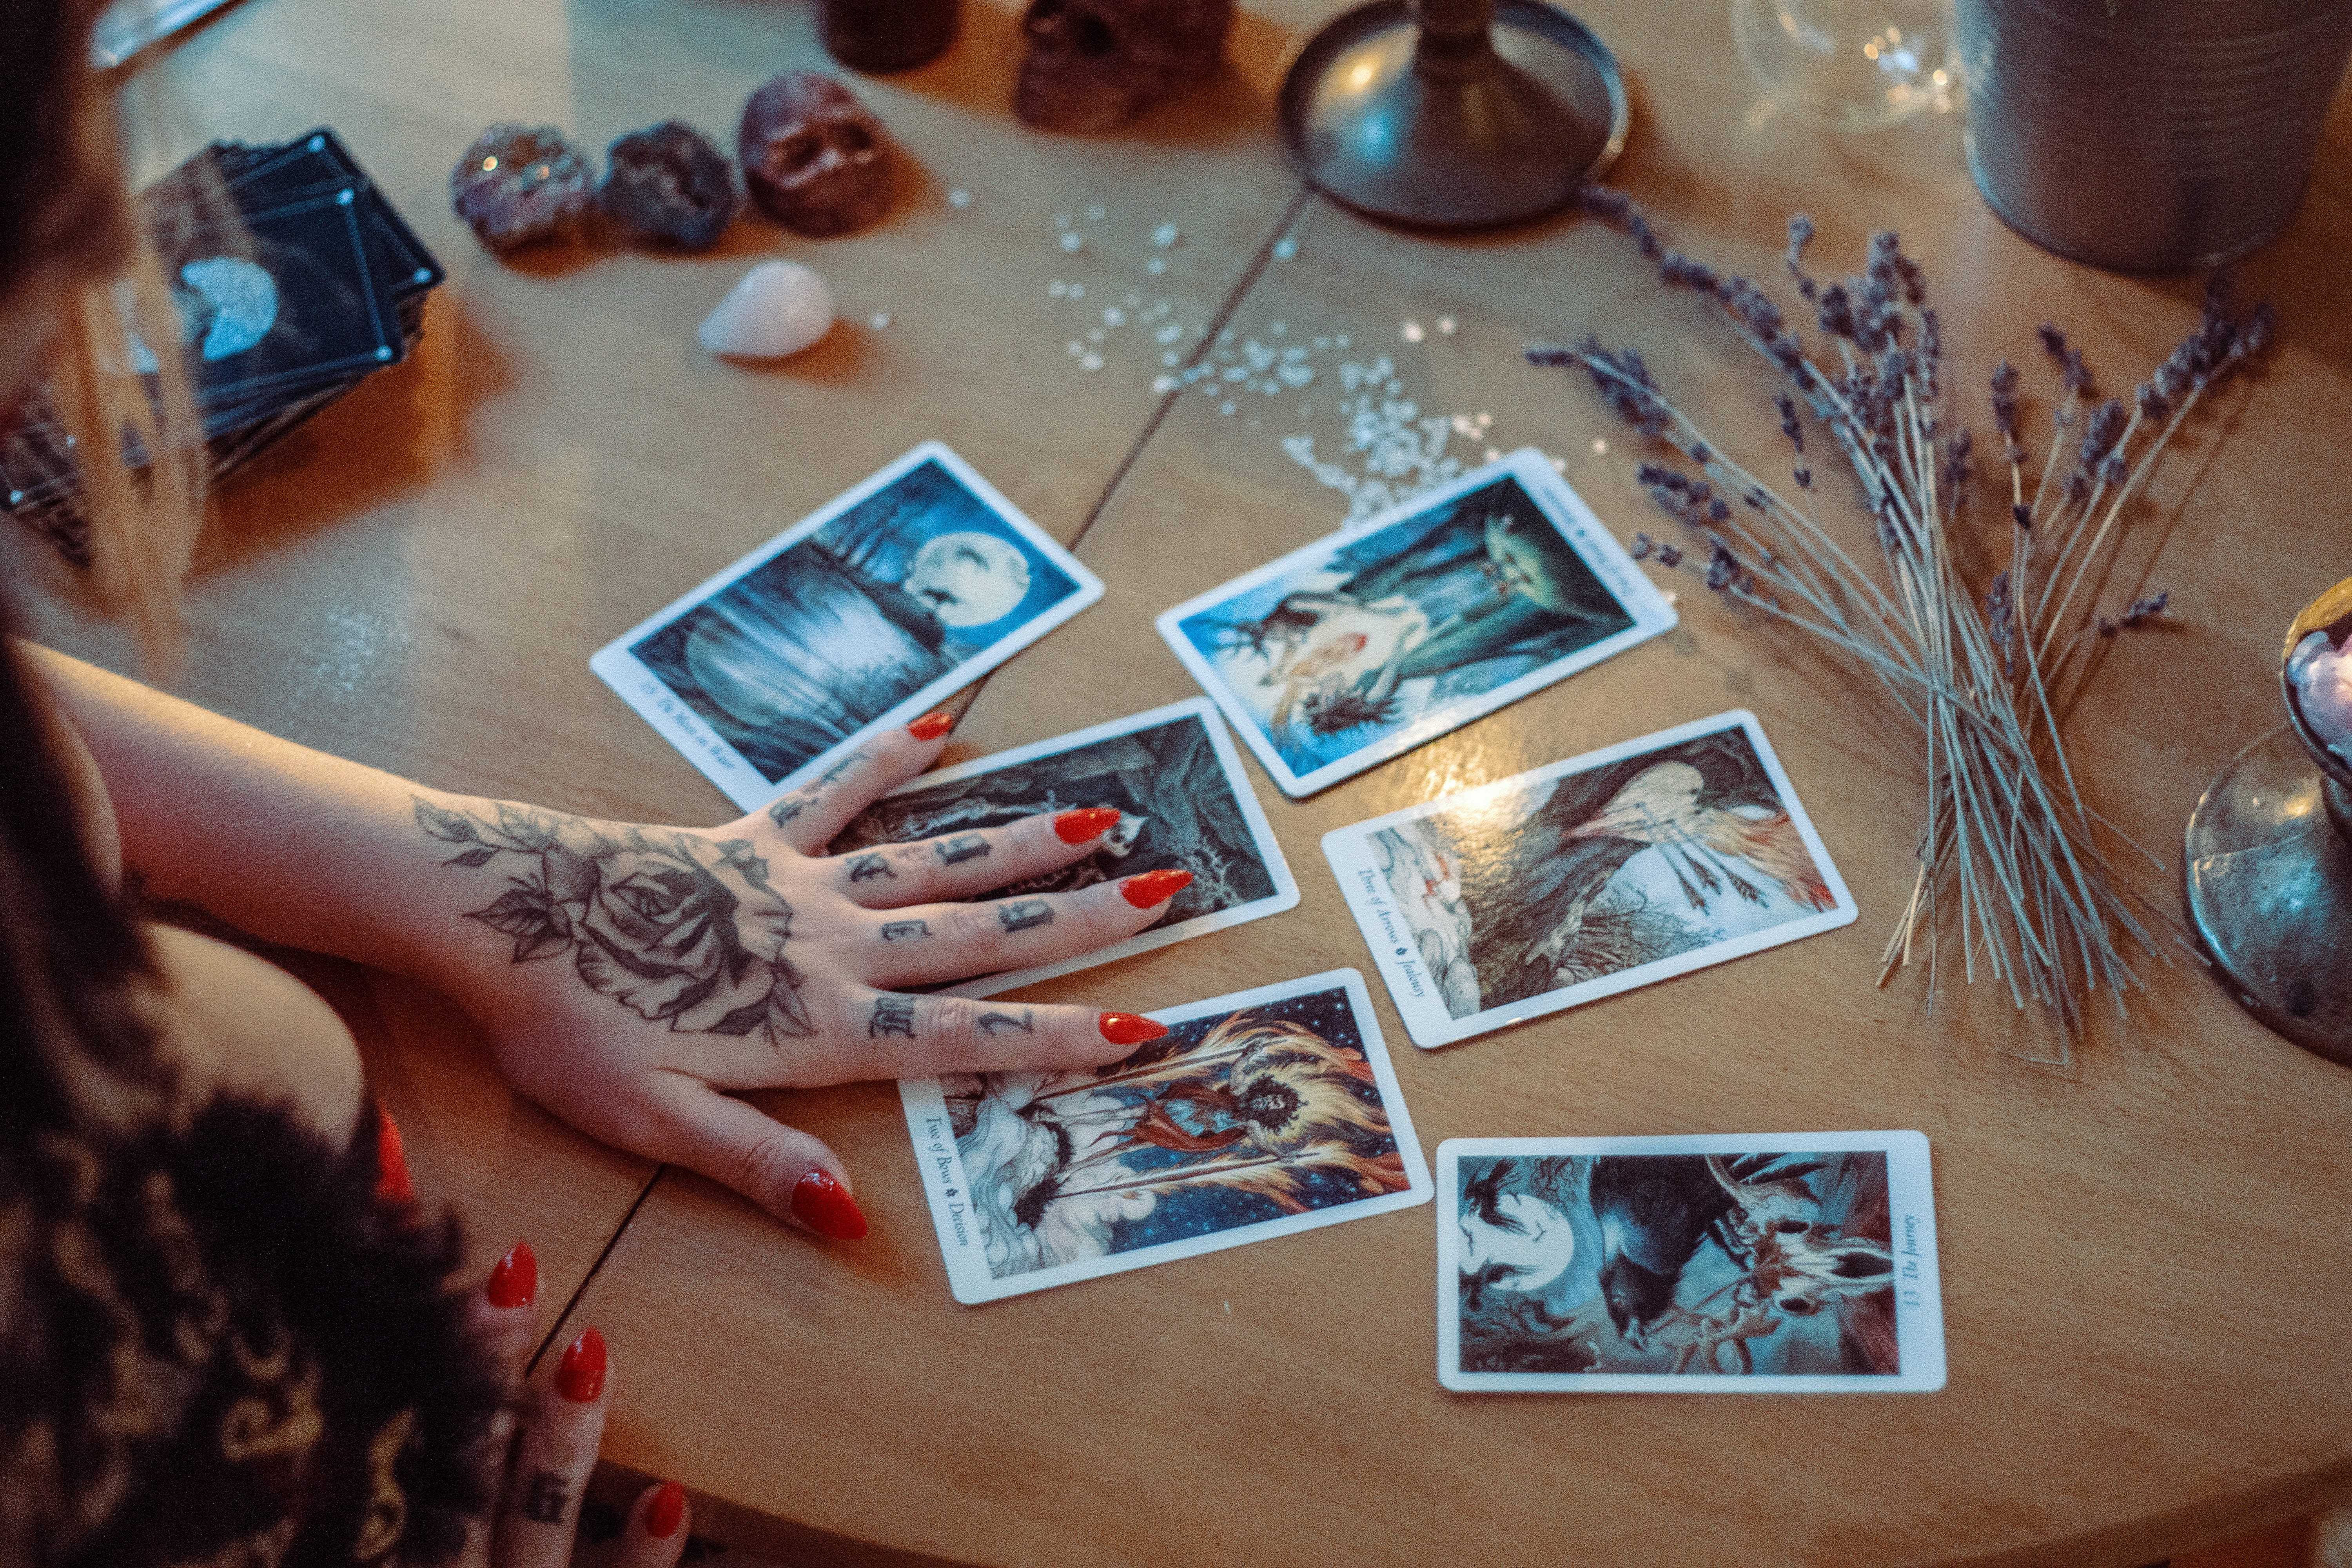 Counting Down the Top 25 Online Psychic Services (Psychic Readings Performed by Phone, Chat, Email or Video)